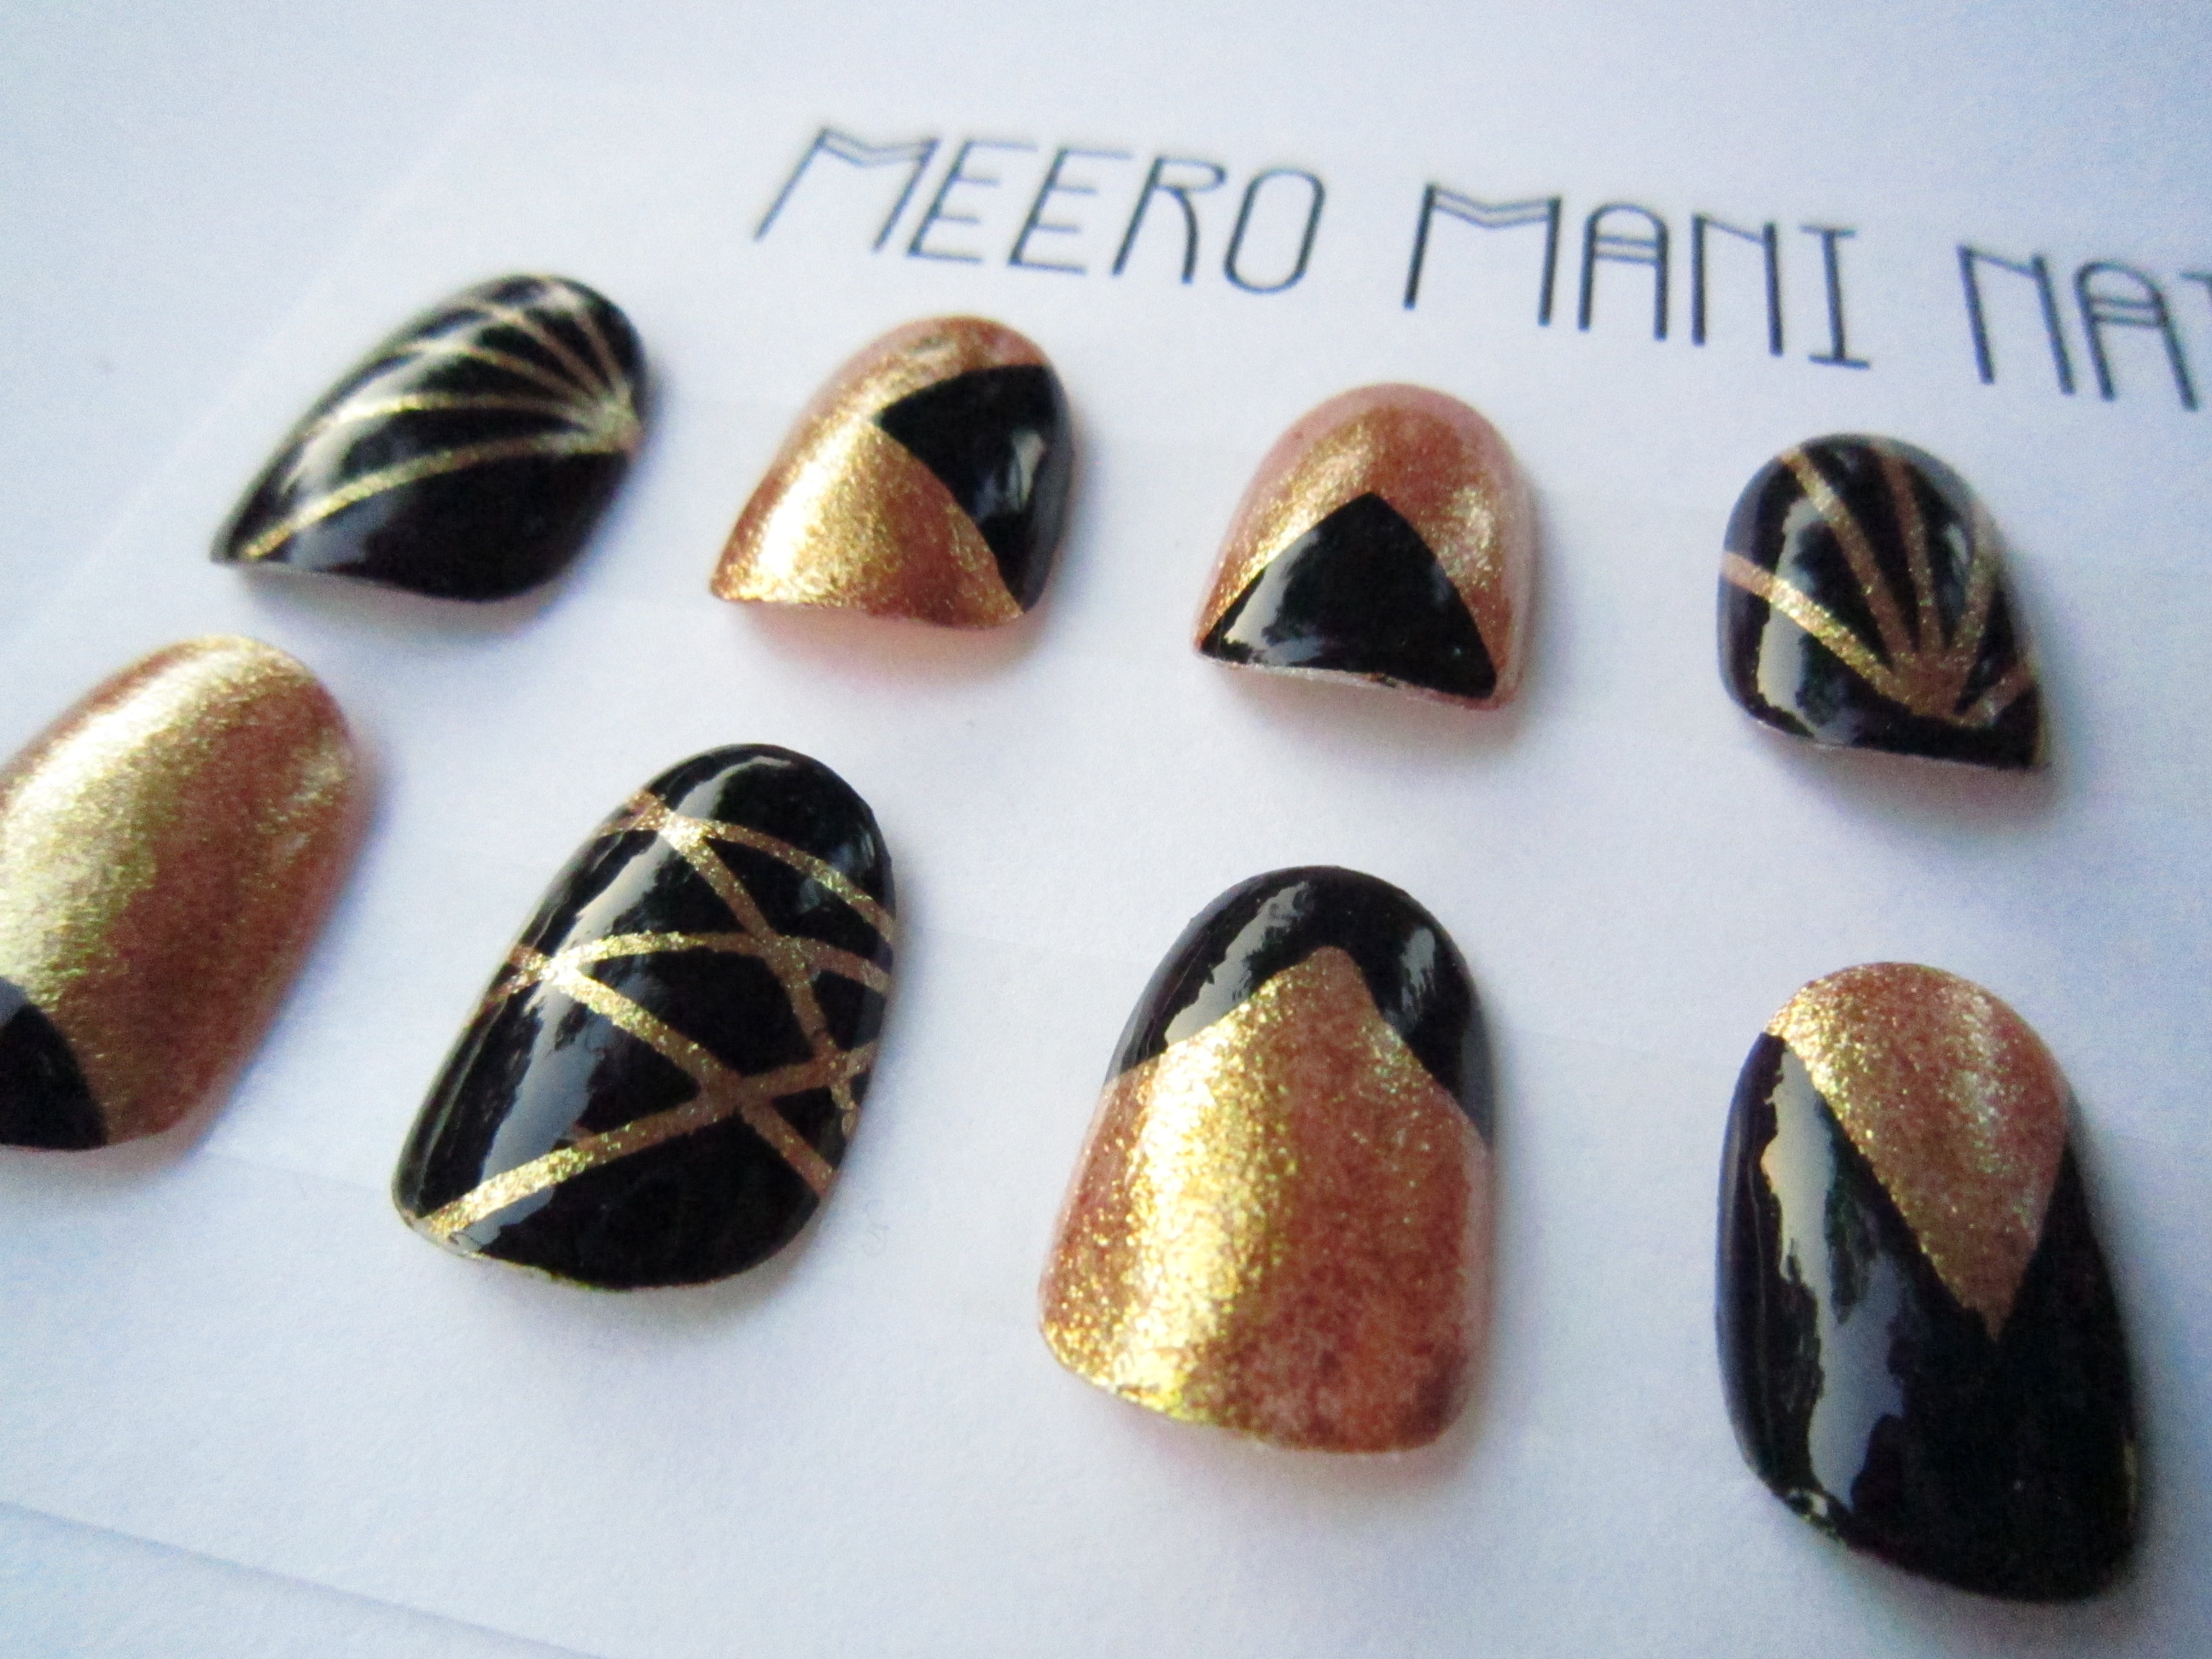 Hollywood Glamour Meero Mani Nails false nails set · MEERO MANI ...